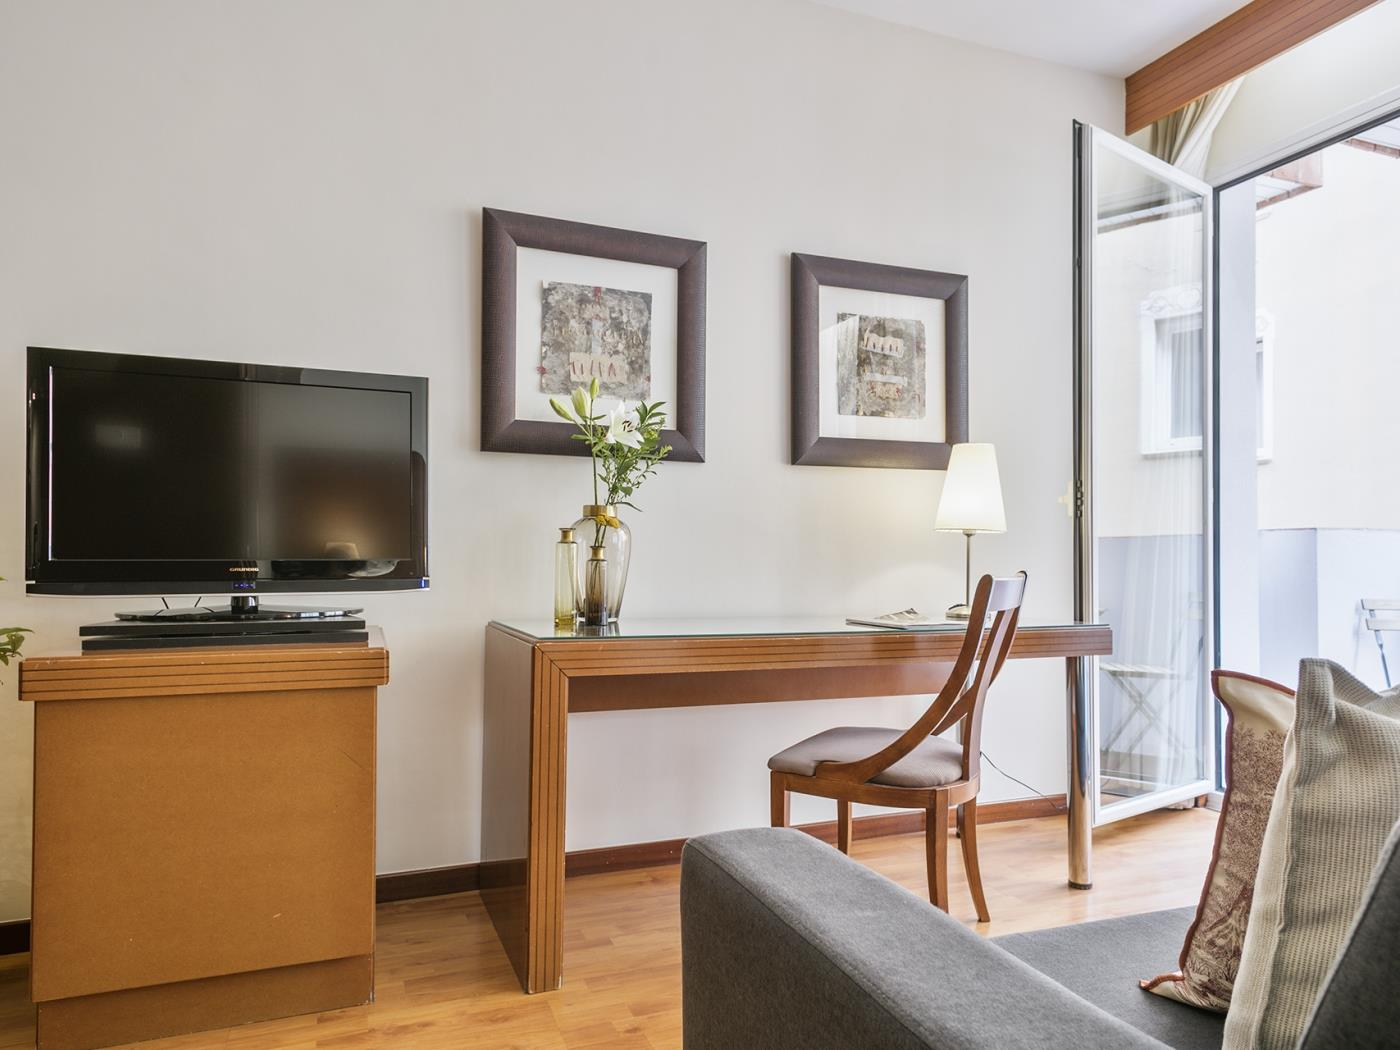 Cozy bright studio apartment for monthly rentals in Sant Gervasi - My Space Barcelona Apartments